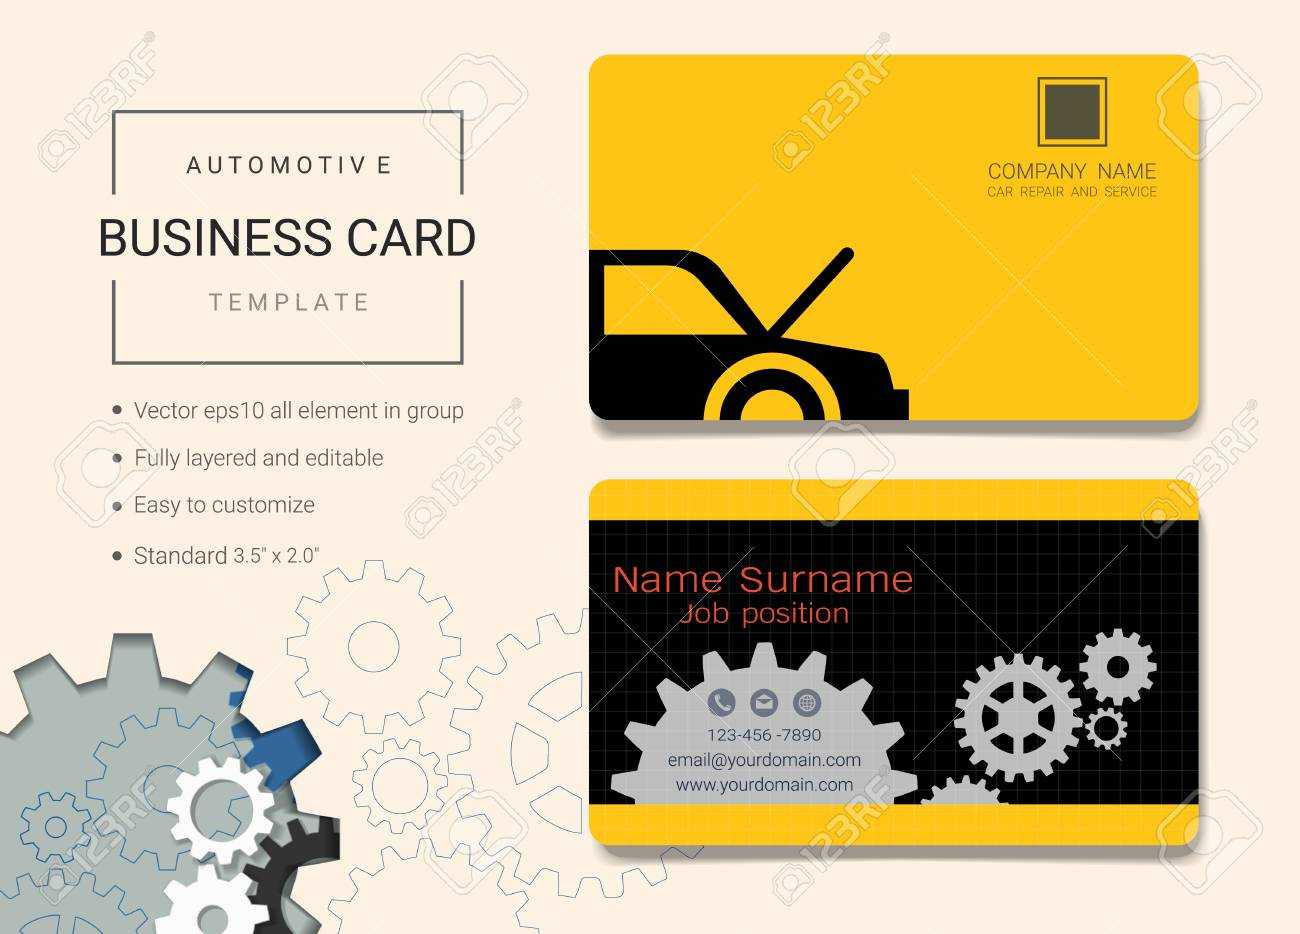 Automotive Business Card Or Name Card Template. Simple Style.. pertaining to Automotive Business Card Templates